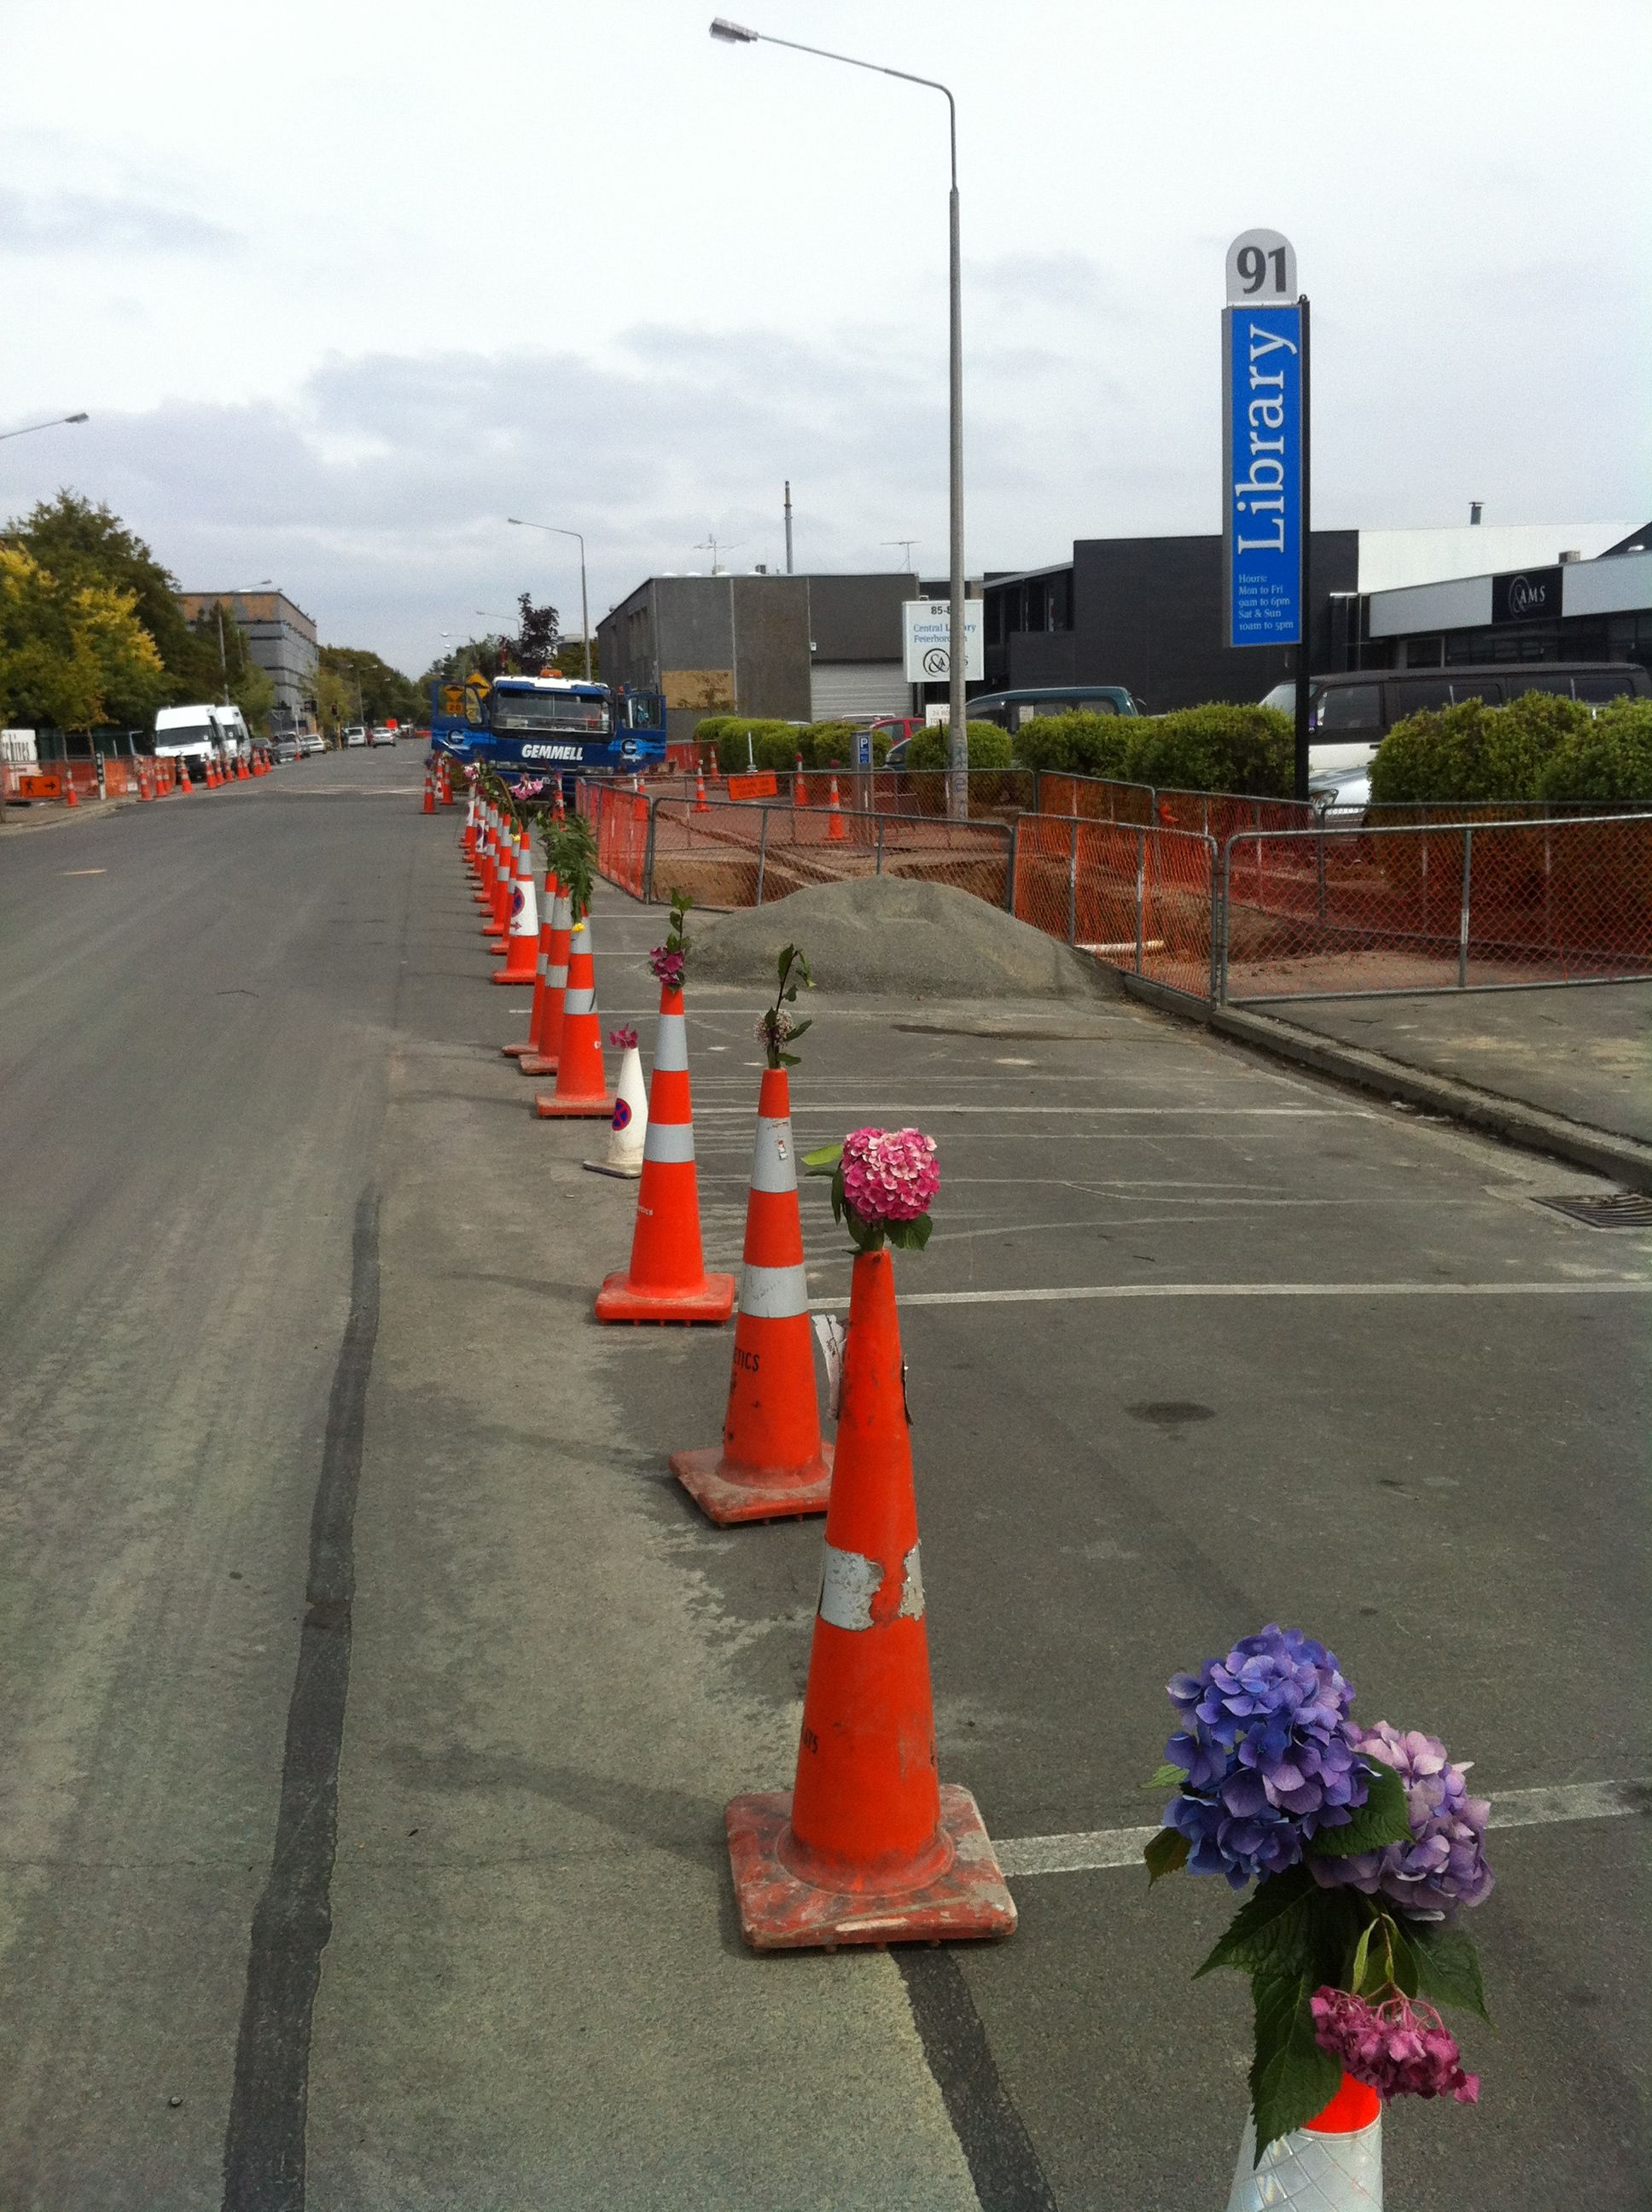 Christchurch on the anniversary of the earthquake